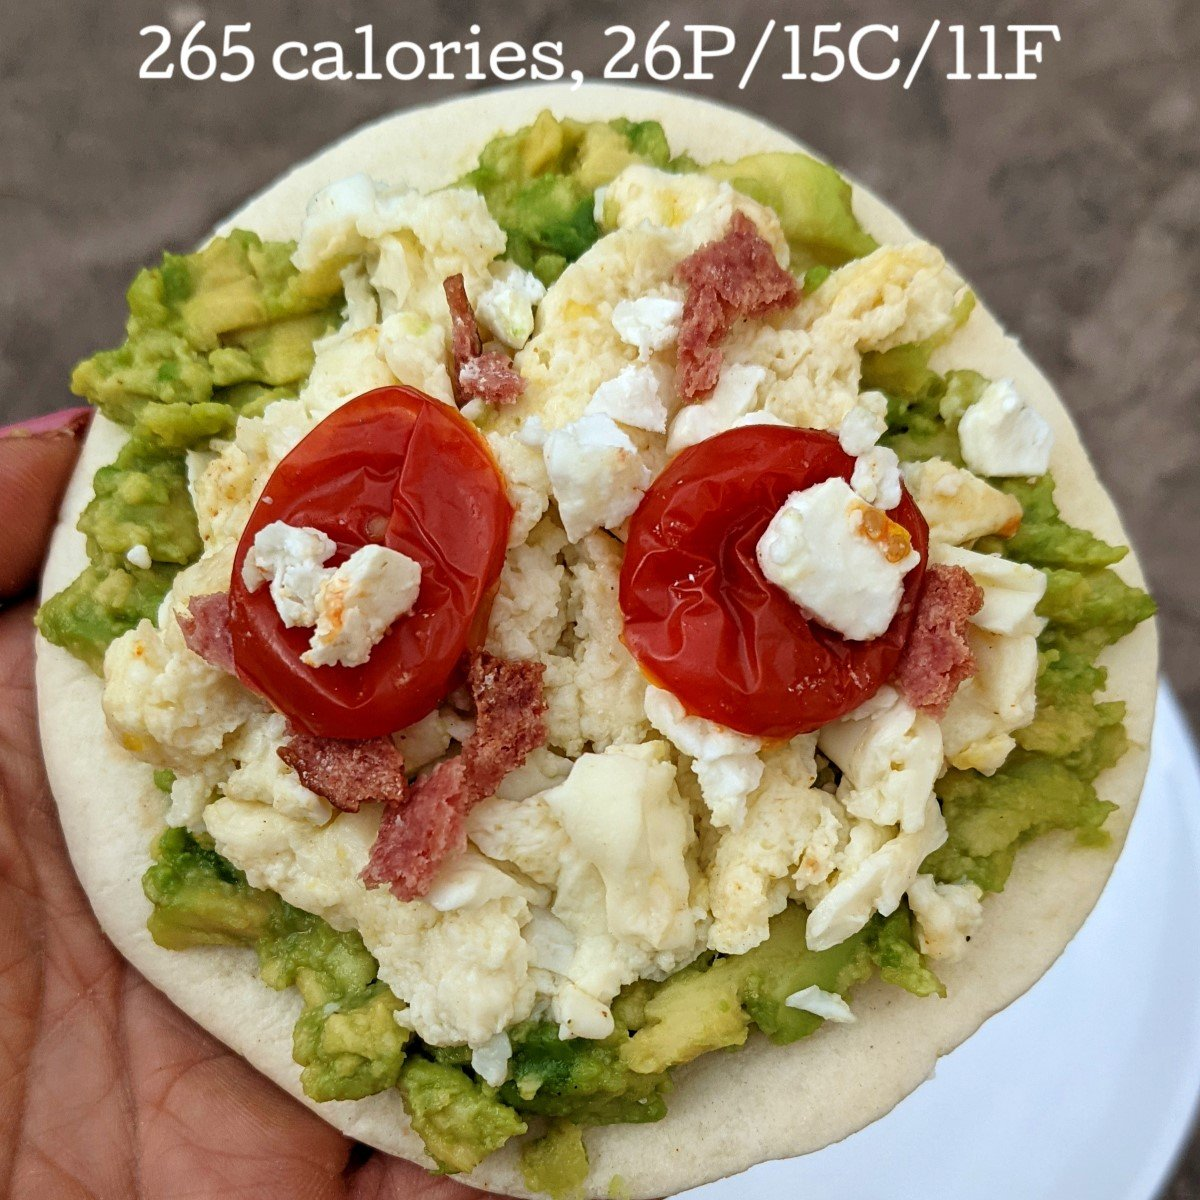 scrambled egg pizza on tortilla with calories and macros